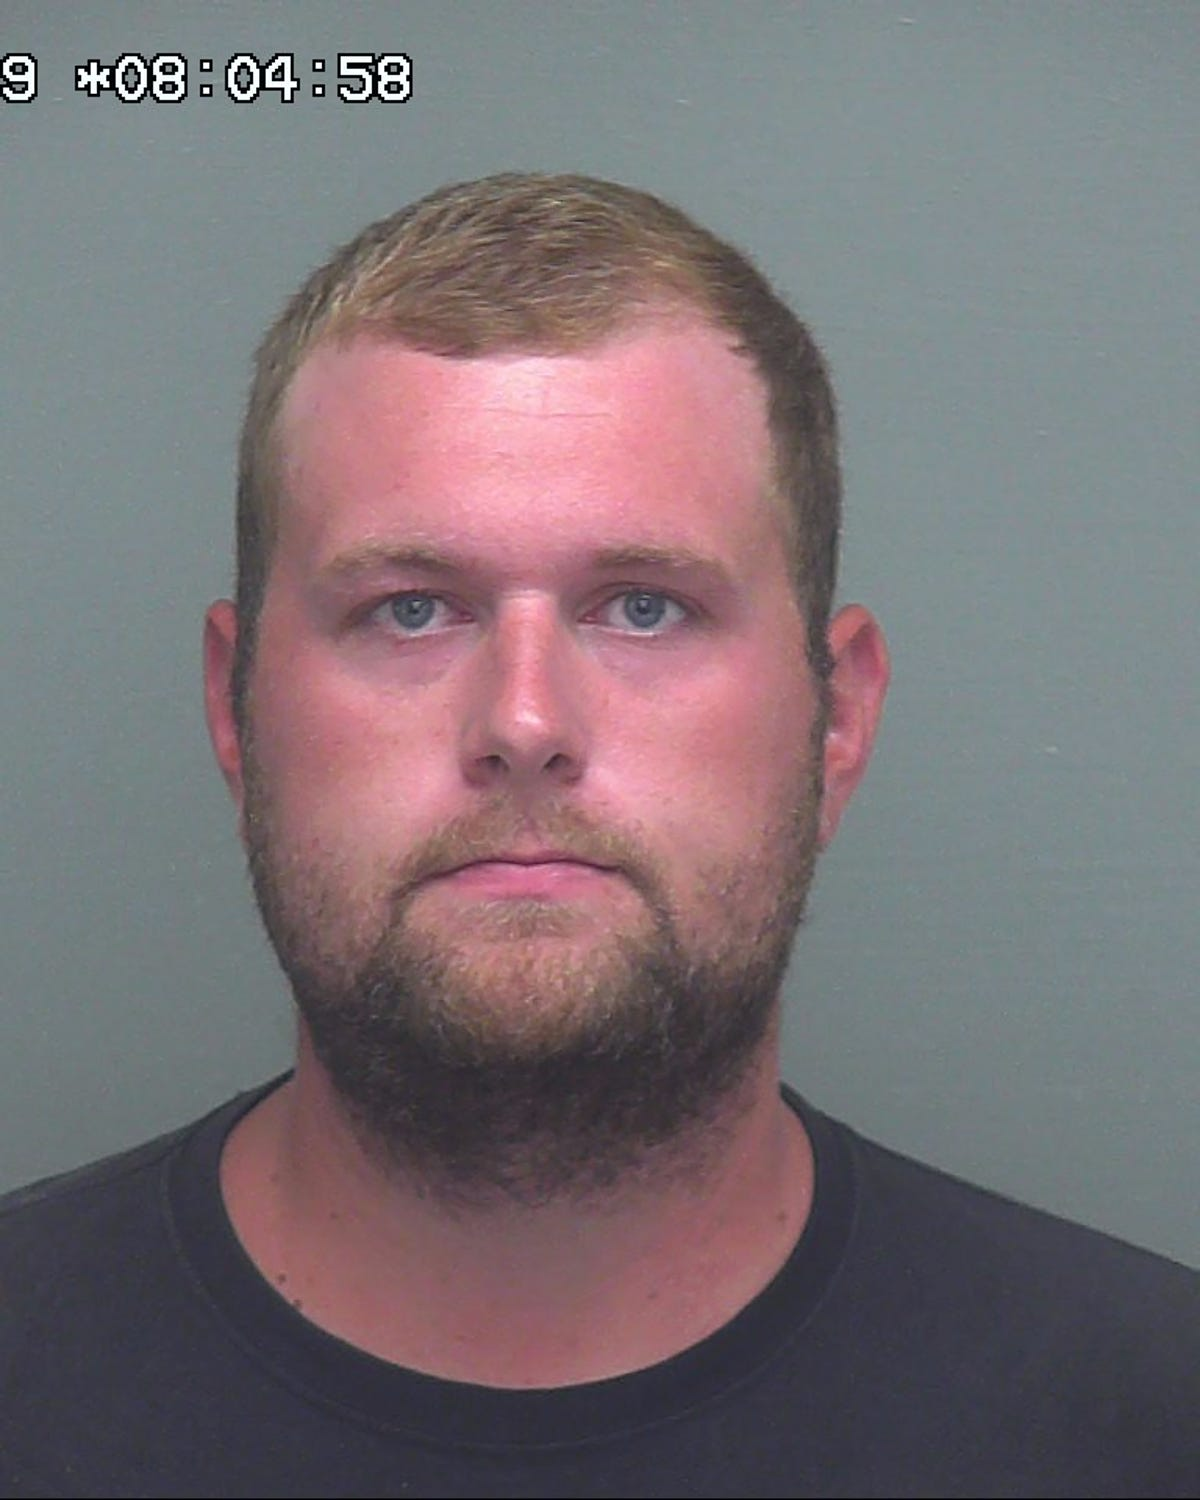 Former police officer Zach Wester arrested, accused of